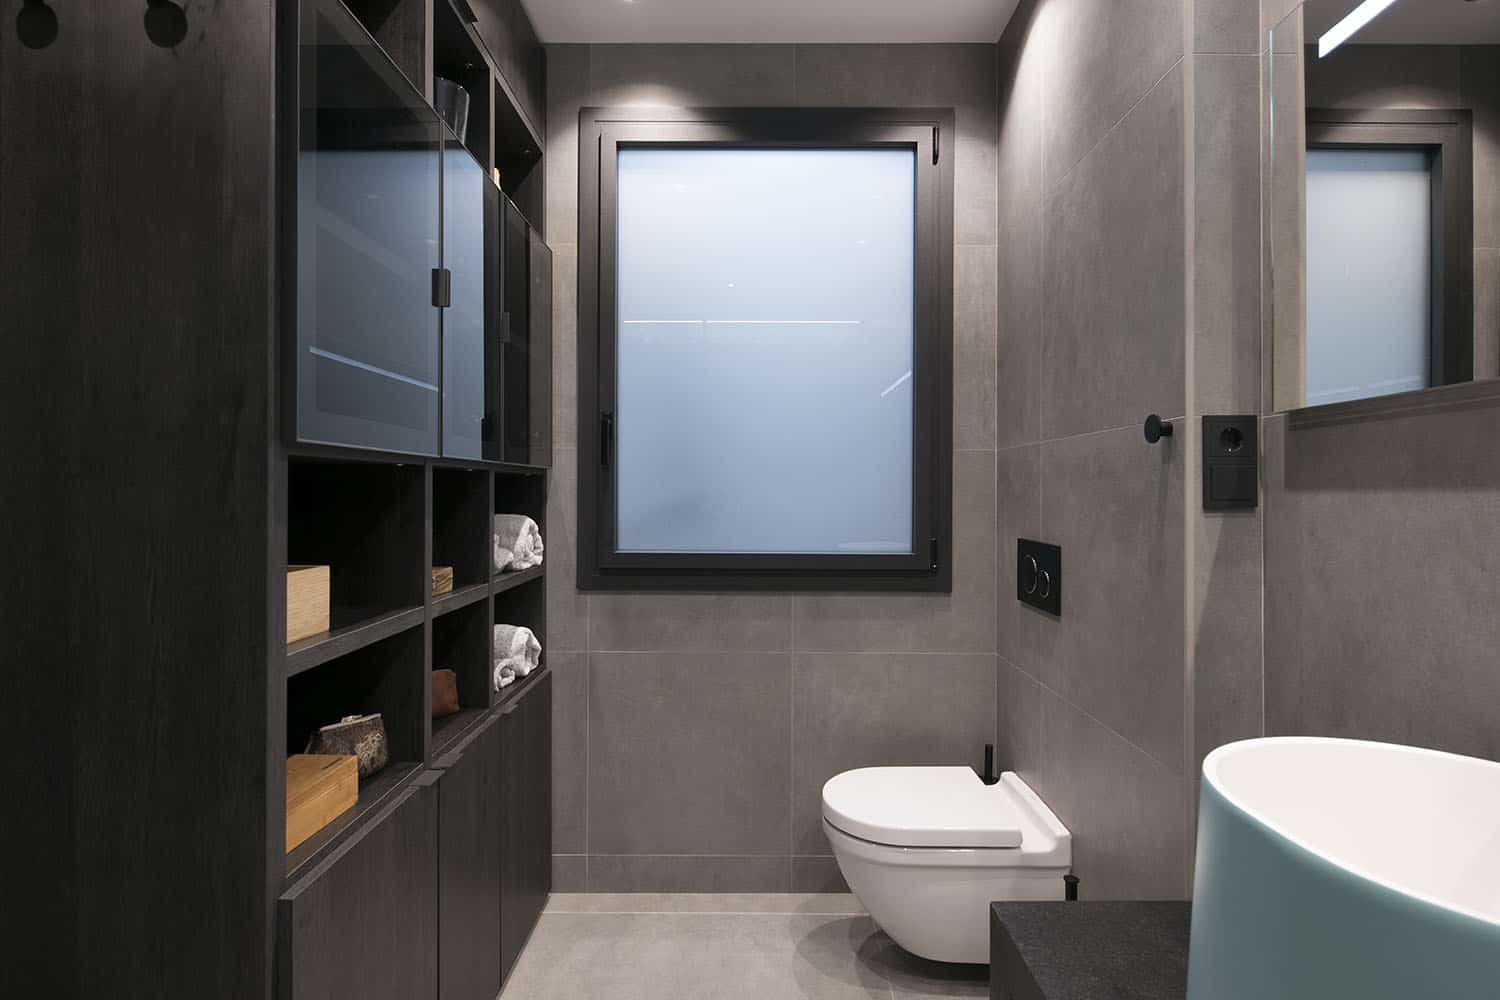 There's dark furniture that contrasts the light tiles and appliances